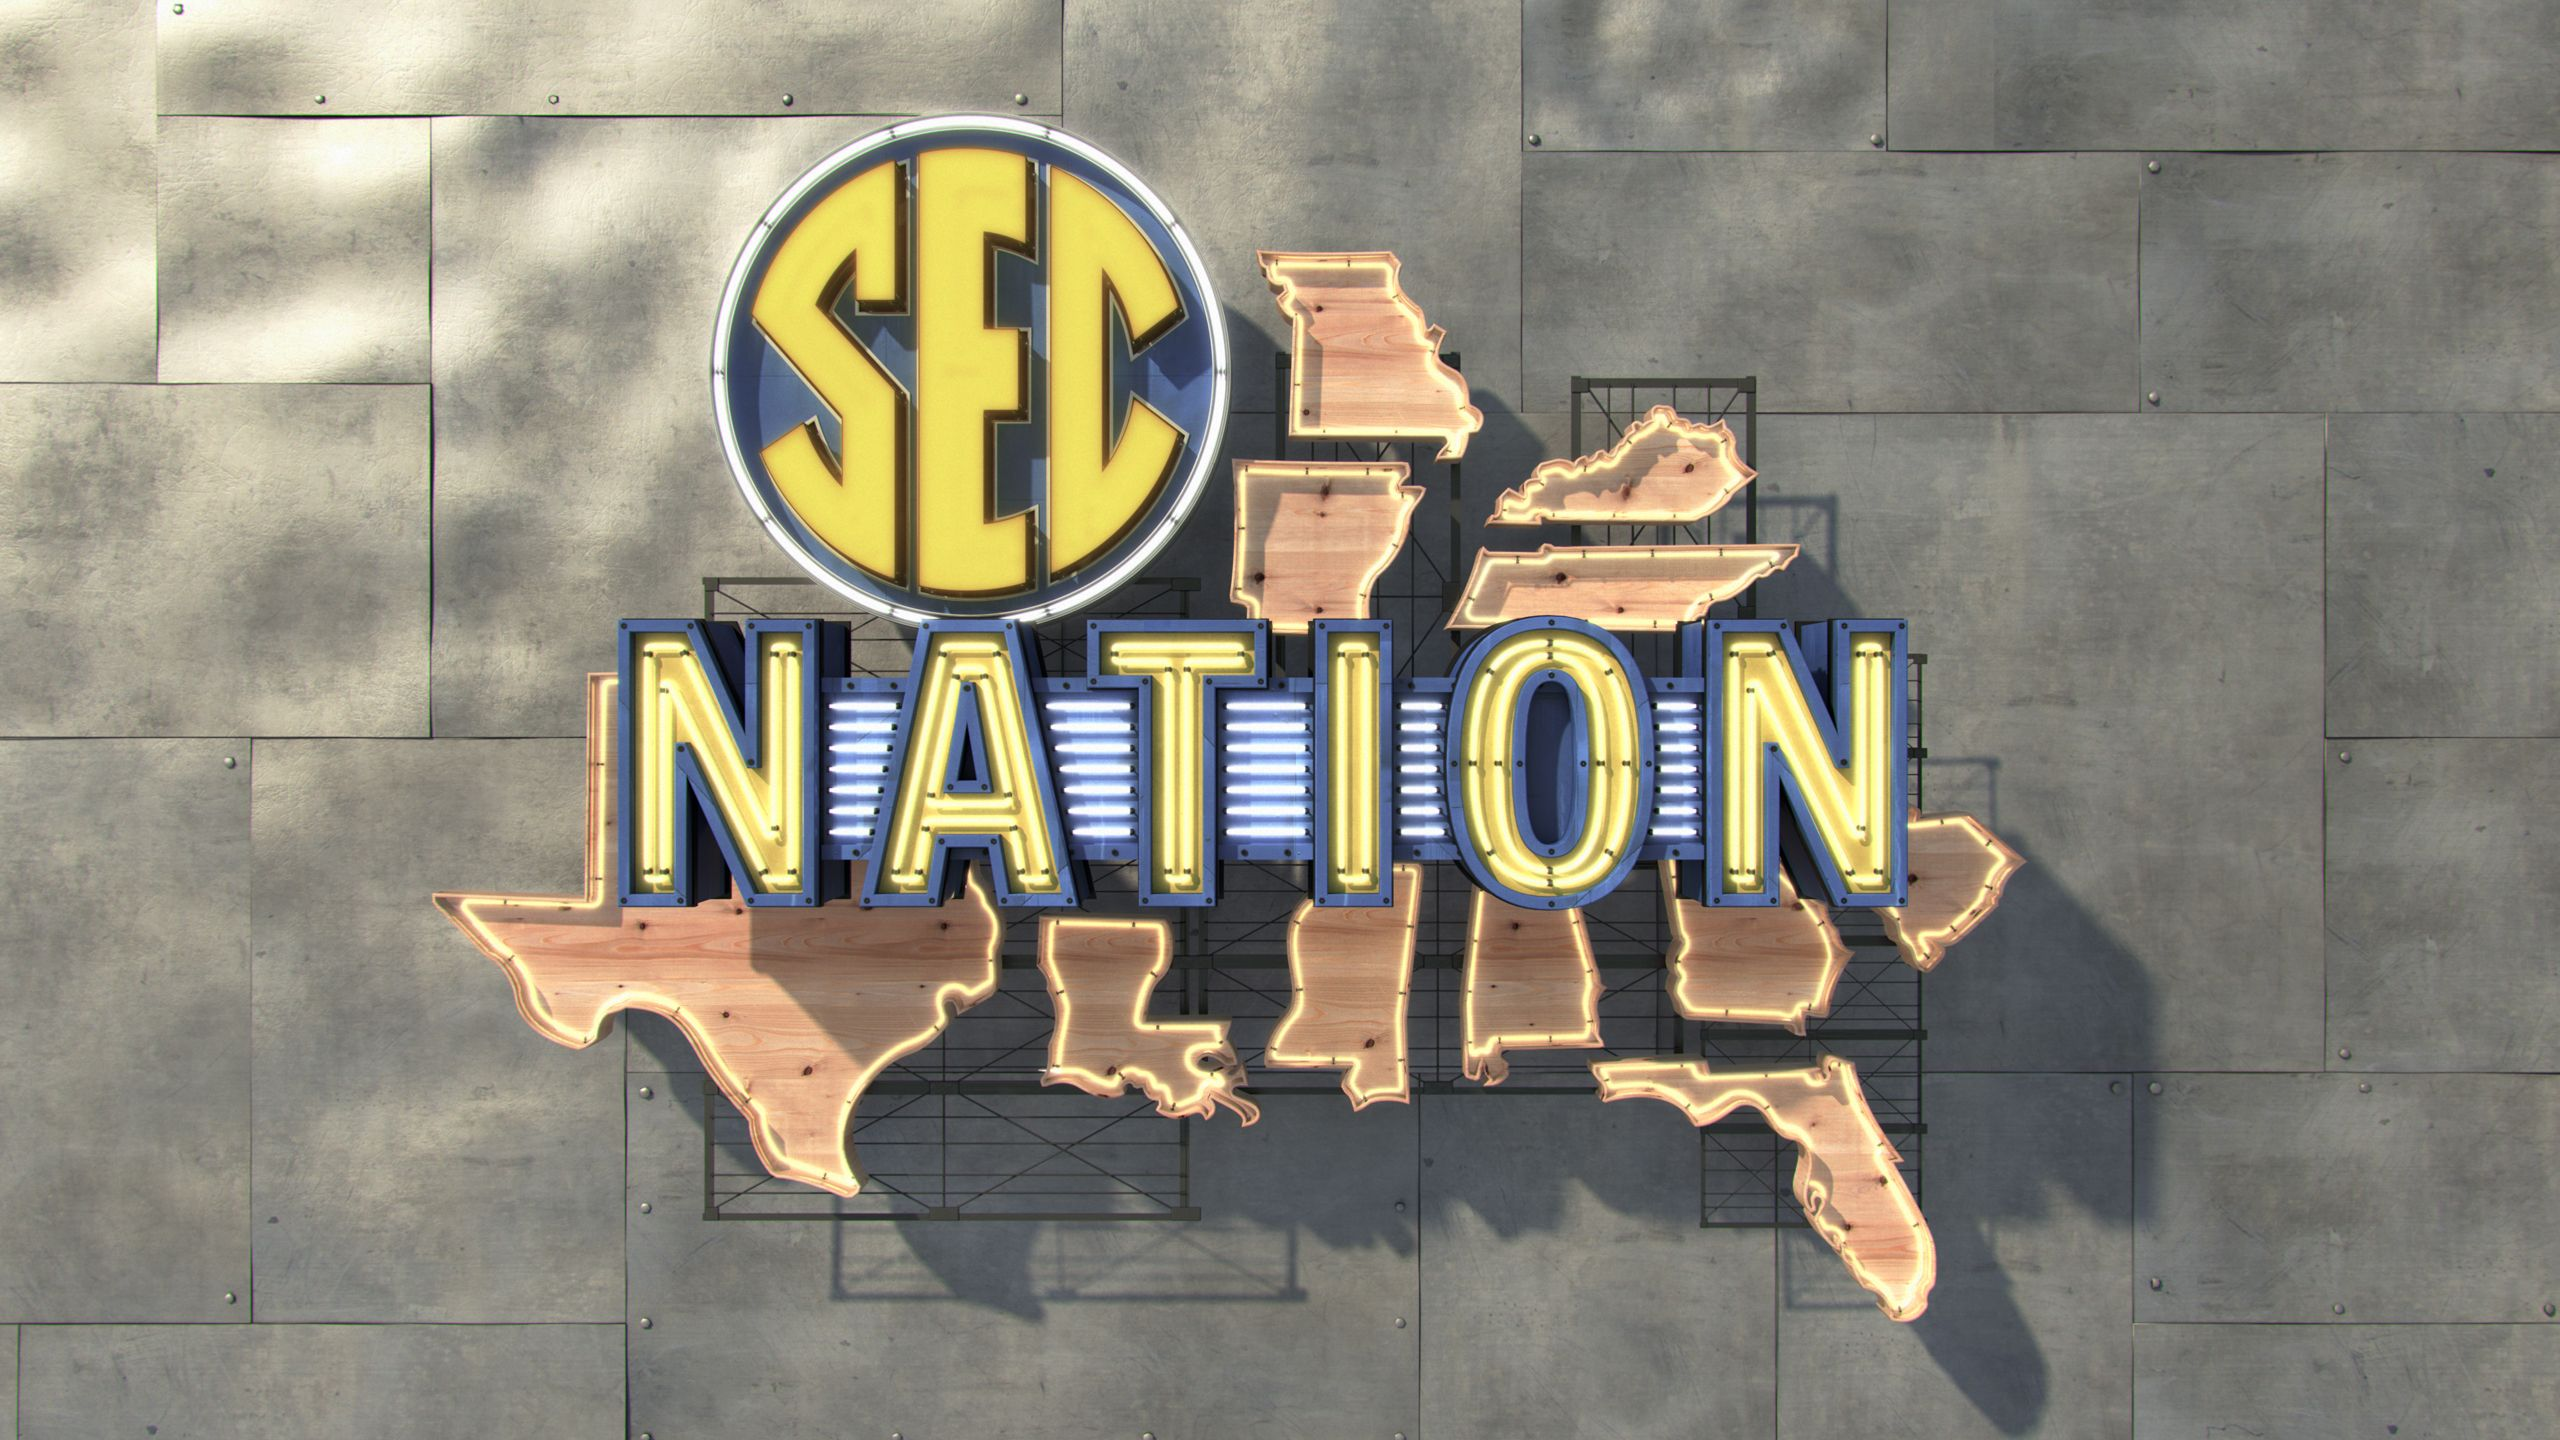 SEC Nation Preview Presented by Holiday Inn Express